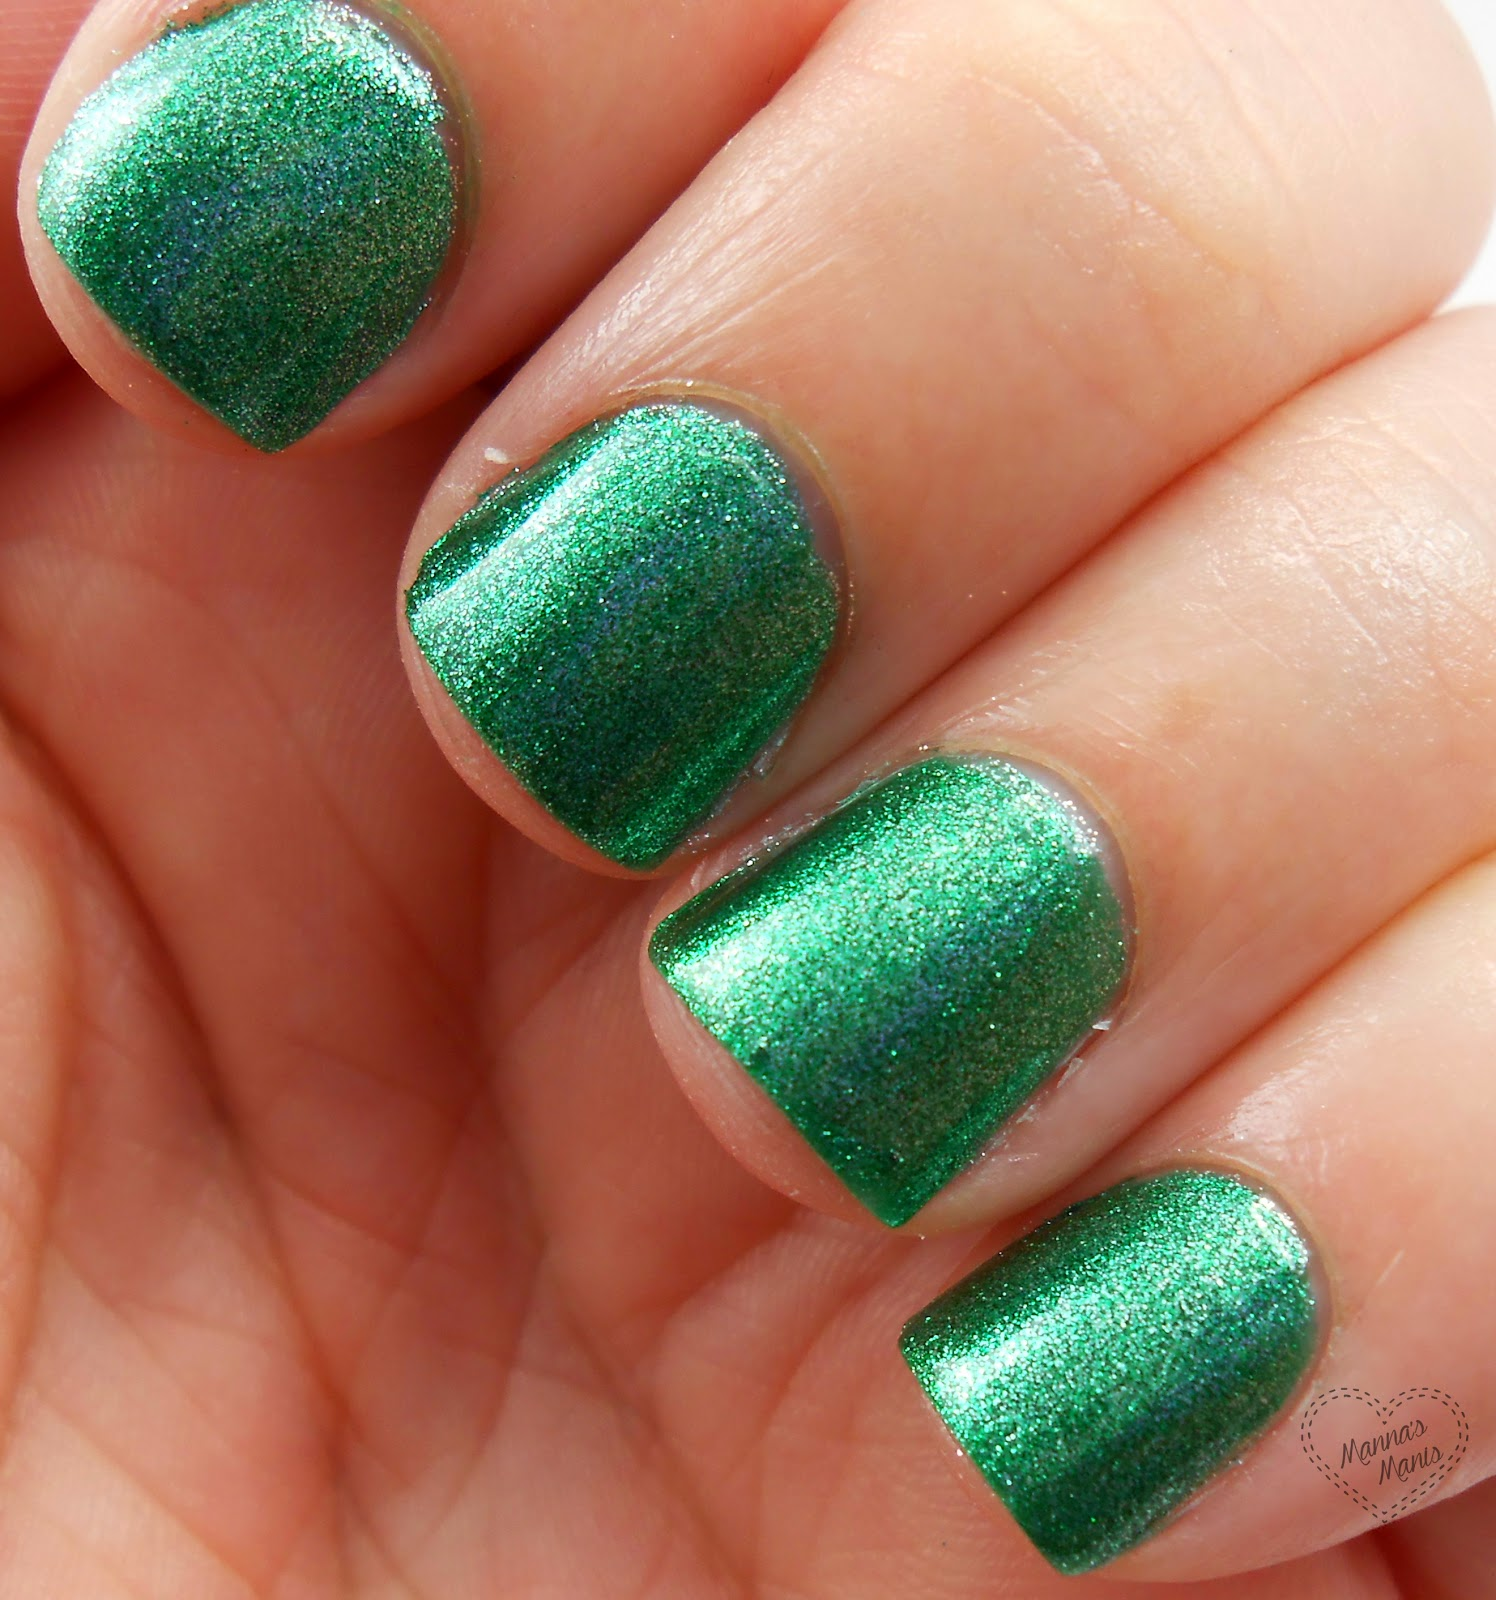 sinful colors pine away, a green shimmer nail polish